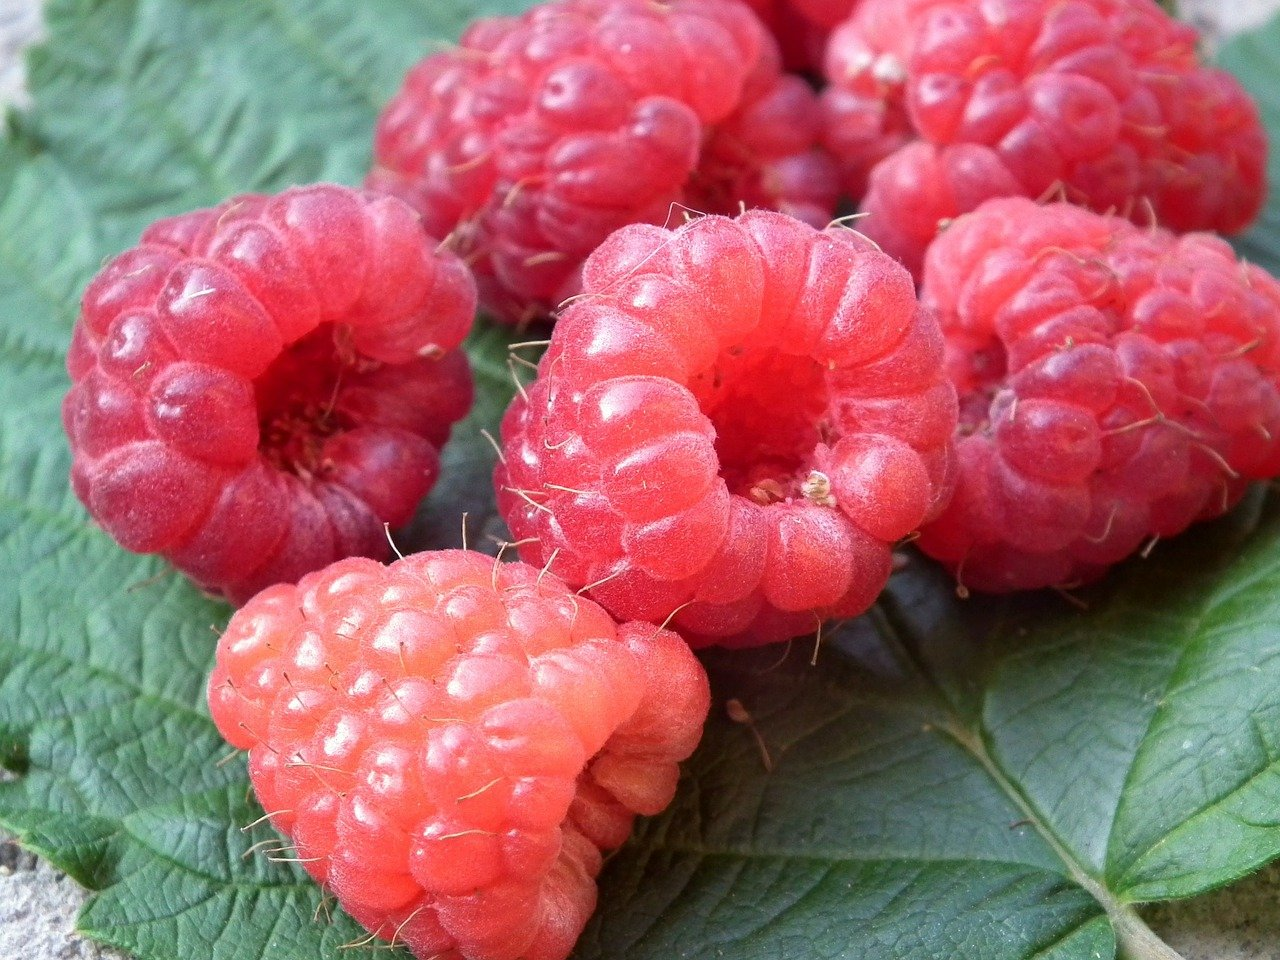 FREE raspberry Stock Photos from PikWizard